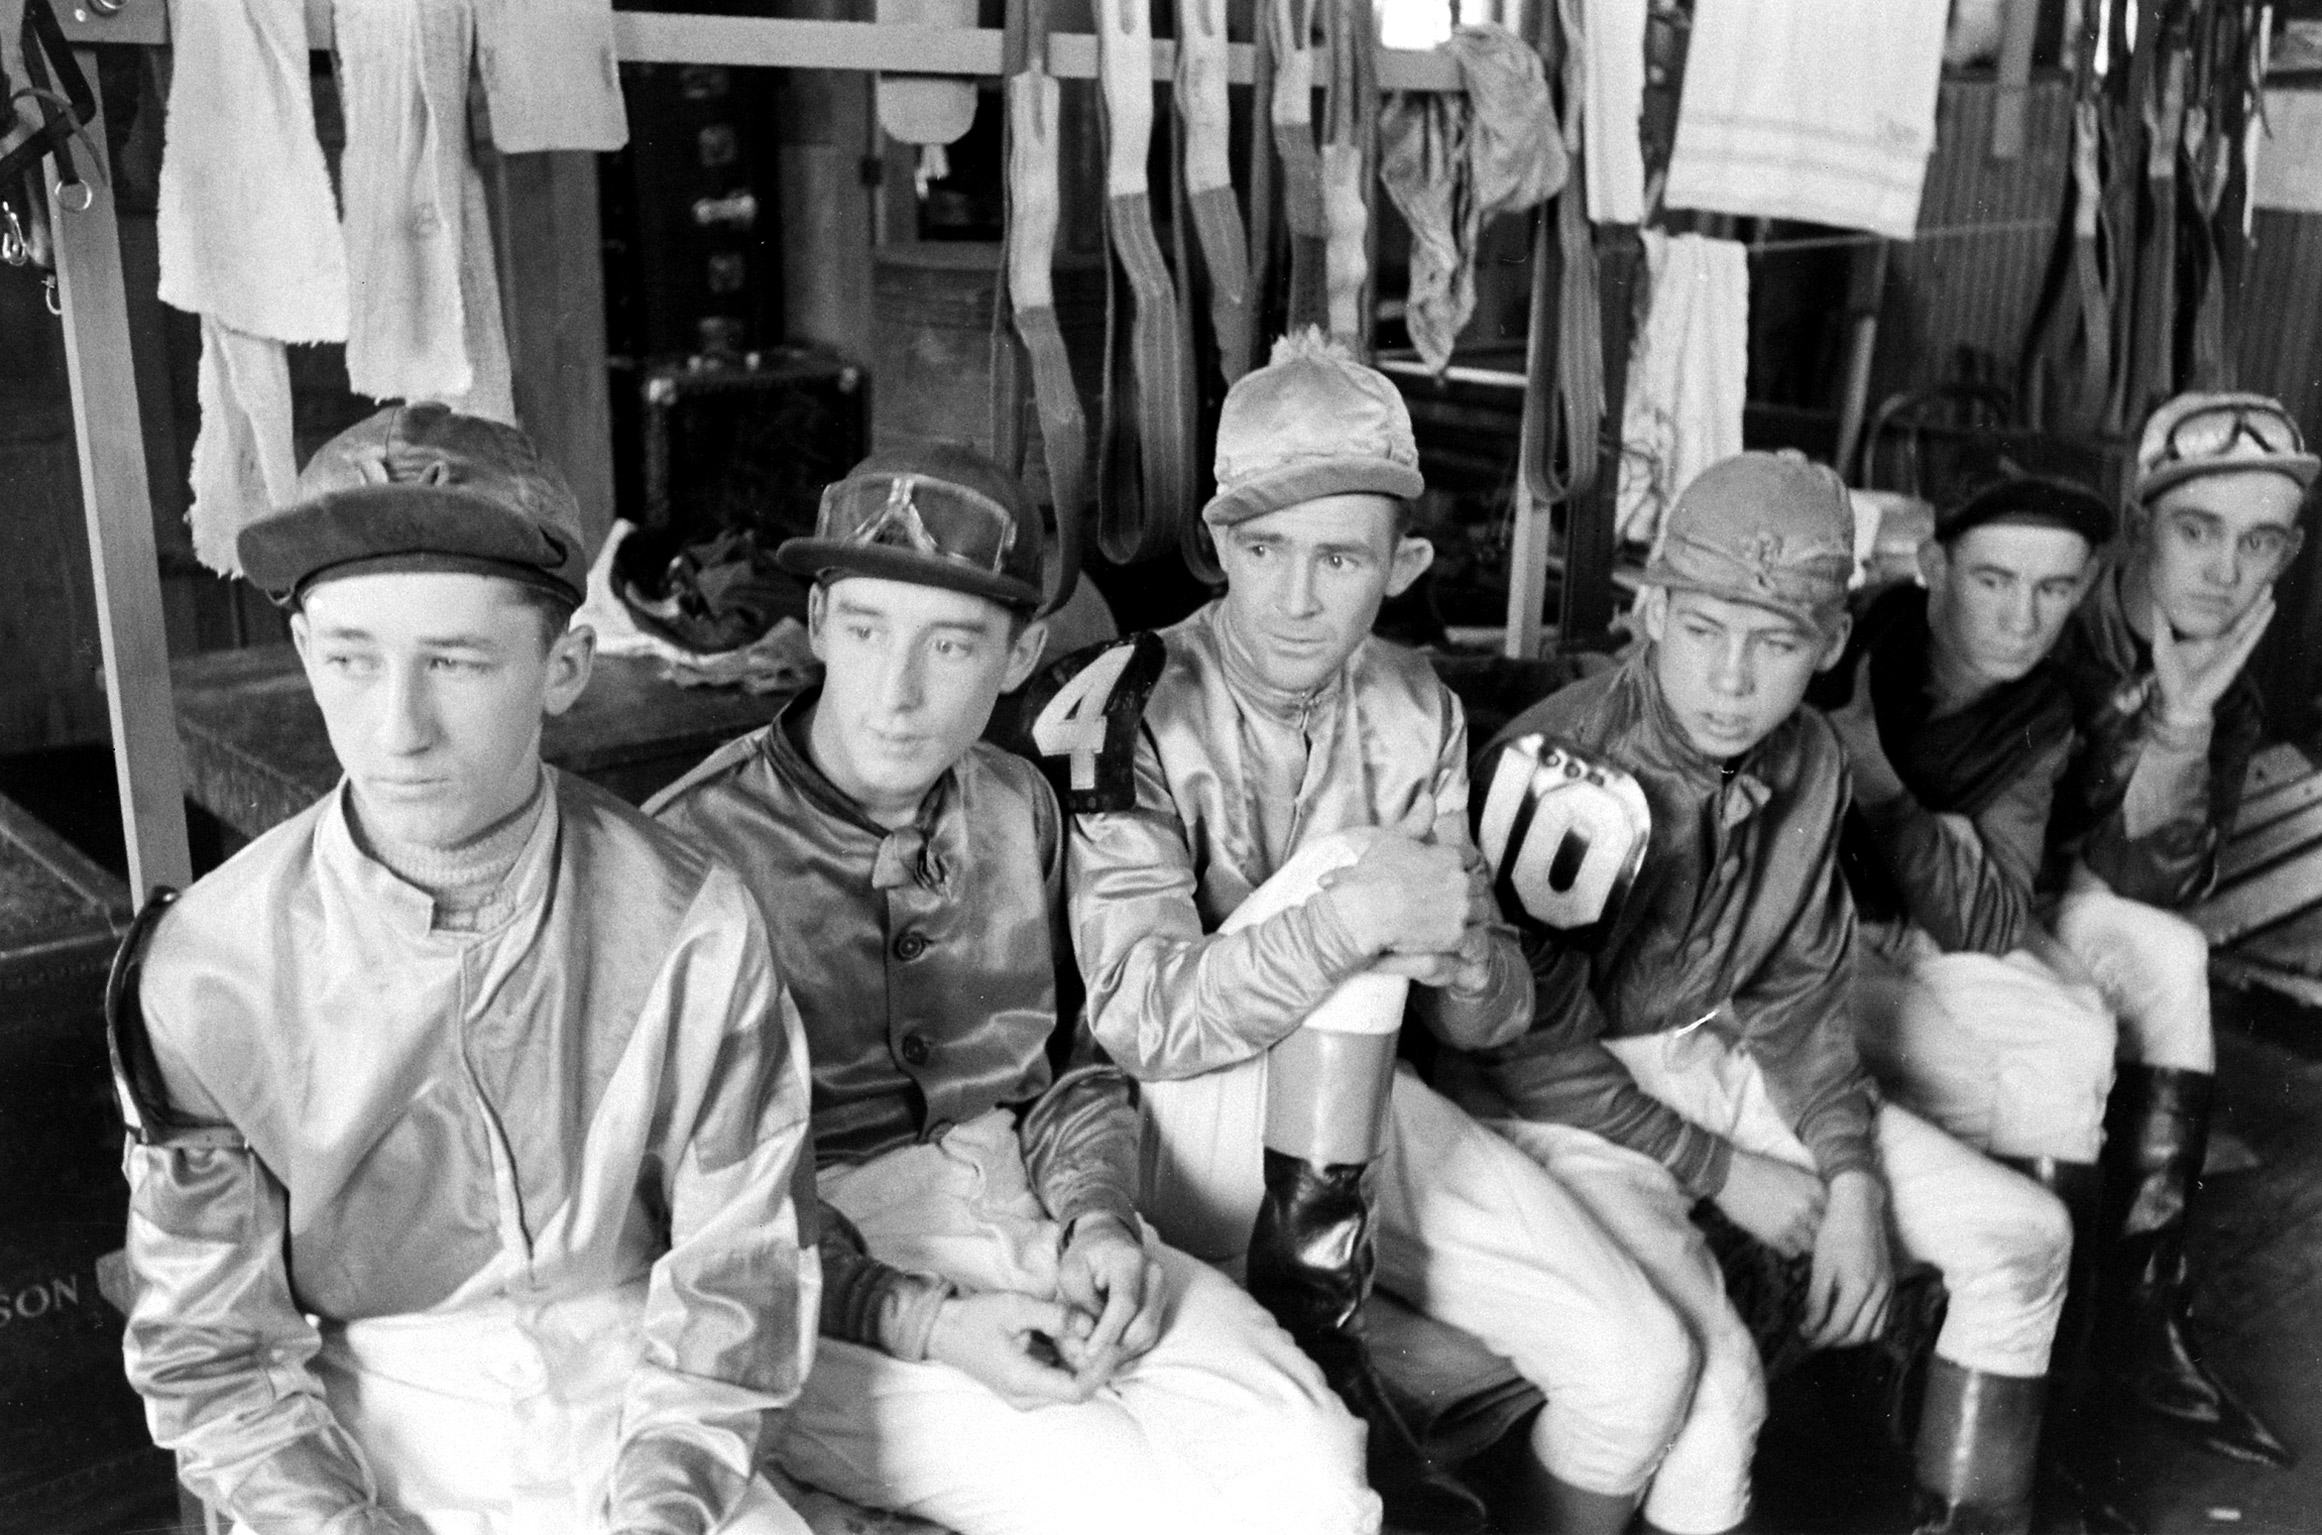 Caption from LIFE. Churchill Downs jockeys in their quarters, include several who rode in the Kentucky Derby. At lower left is Hubert Leblanc who rode Miss Mary Hirsh's No Sir. Next to him is Hilton Dabson, who rode William Shea's and Miss E. G. Rand's Merry Maker. Fourth from left, with the number 10 on his sleeve is Basil James, who rode J. W. Parrish's Dellor.